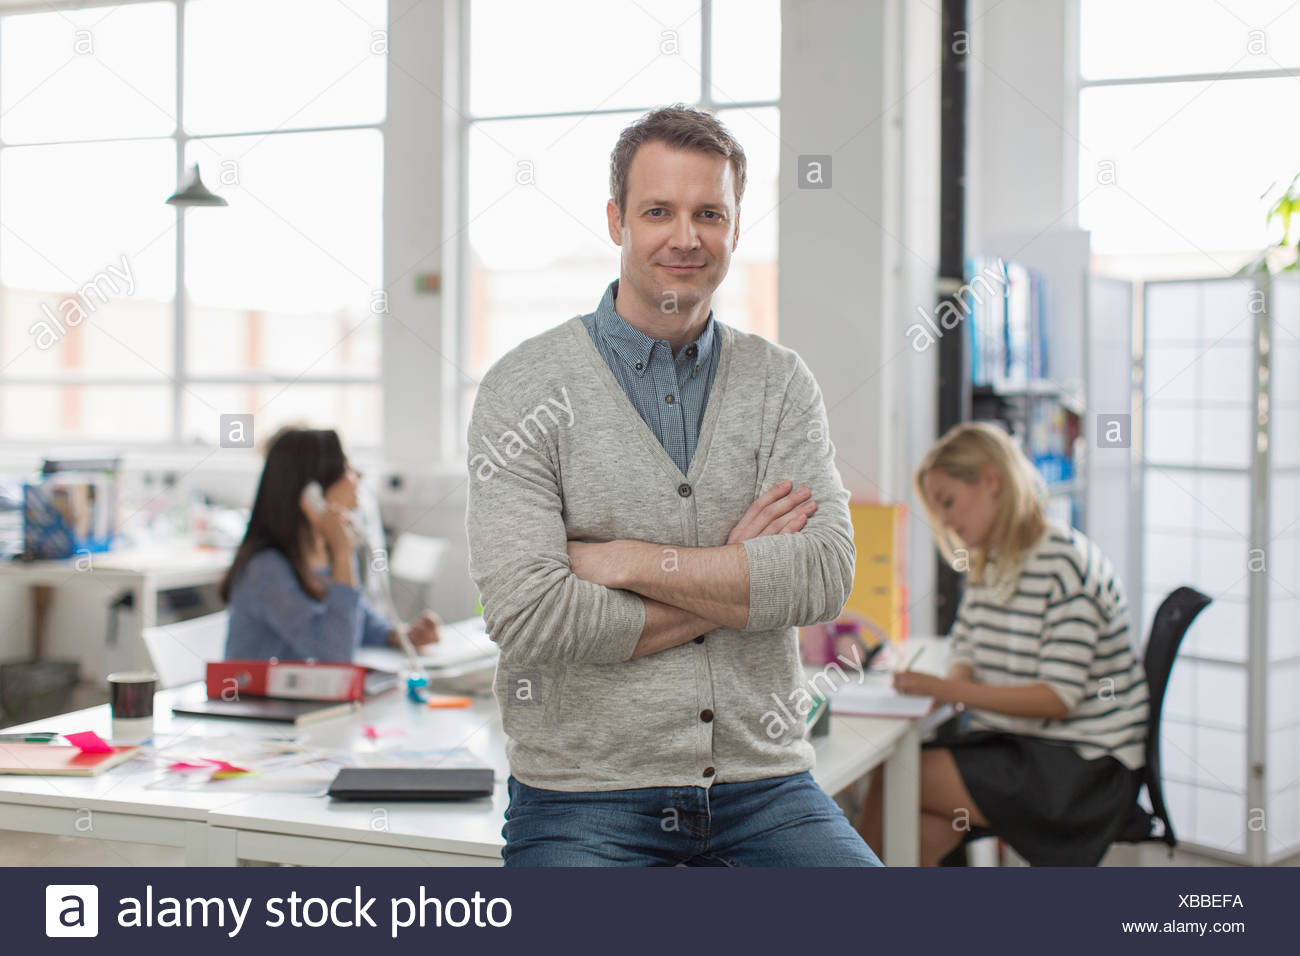 Man sitting on desk and smiling in creative office, portrait Photo Stock